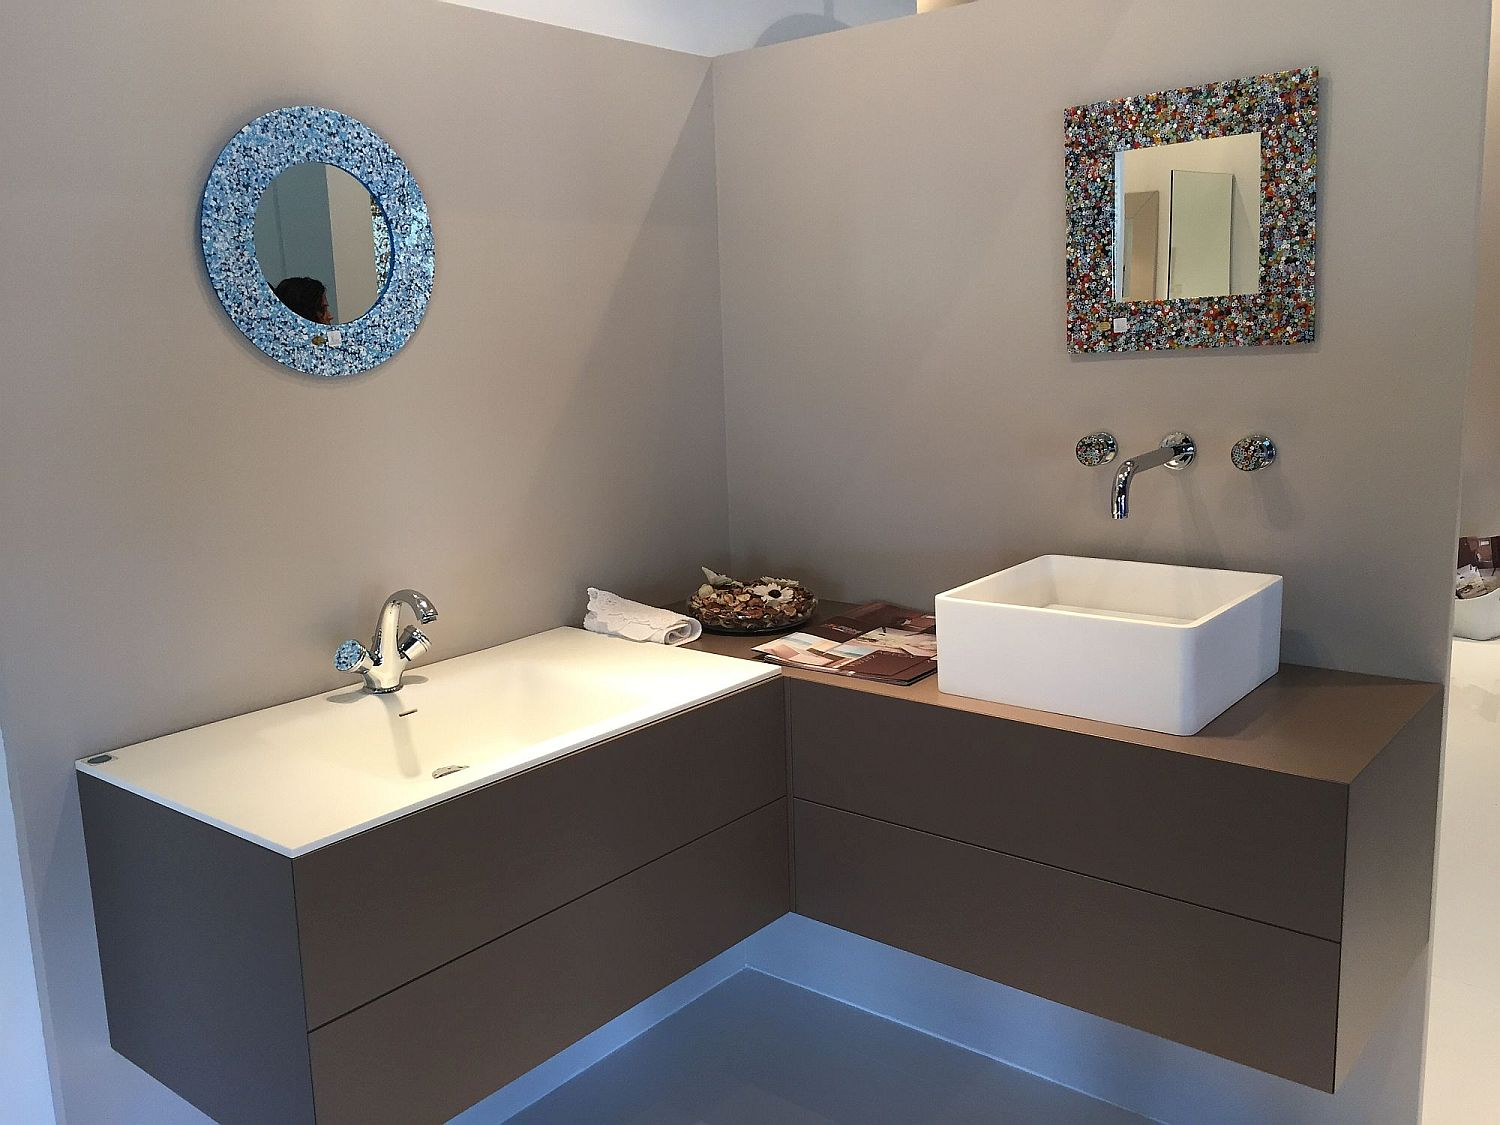 Vanity Contemporary Bathroom Cabinets Turn to the Corner